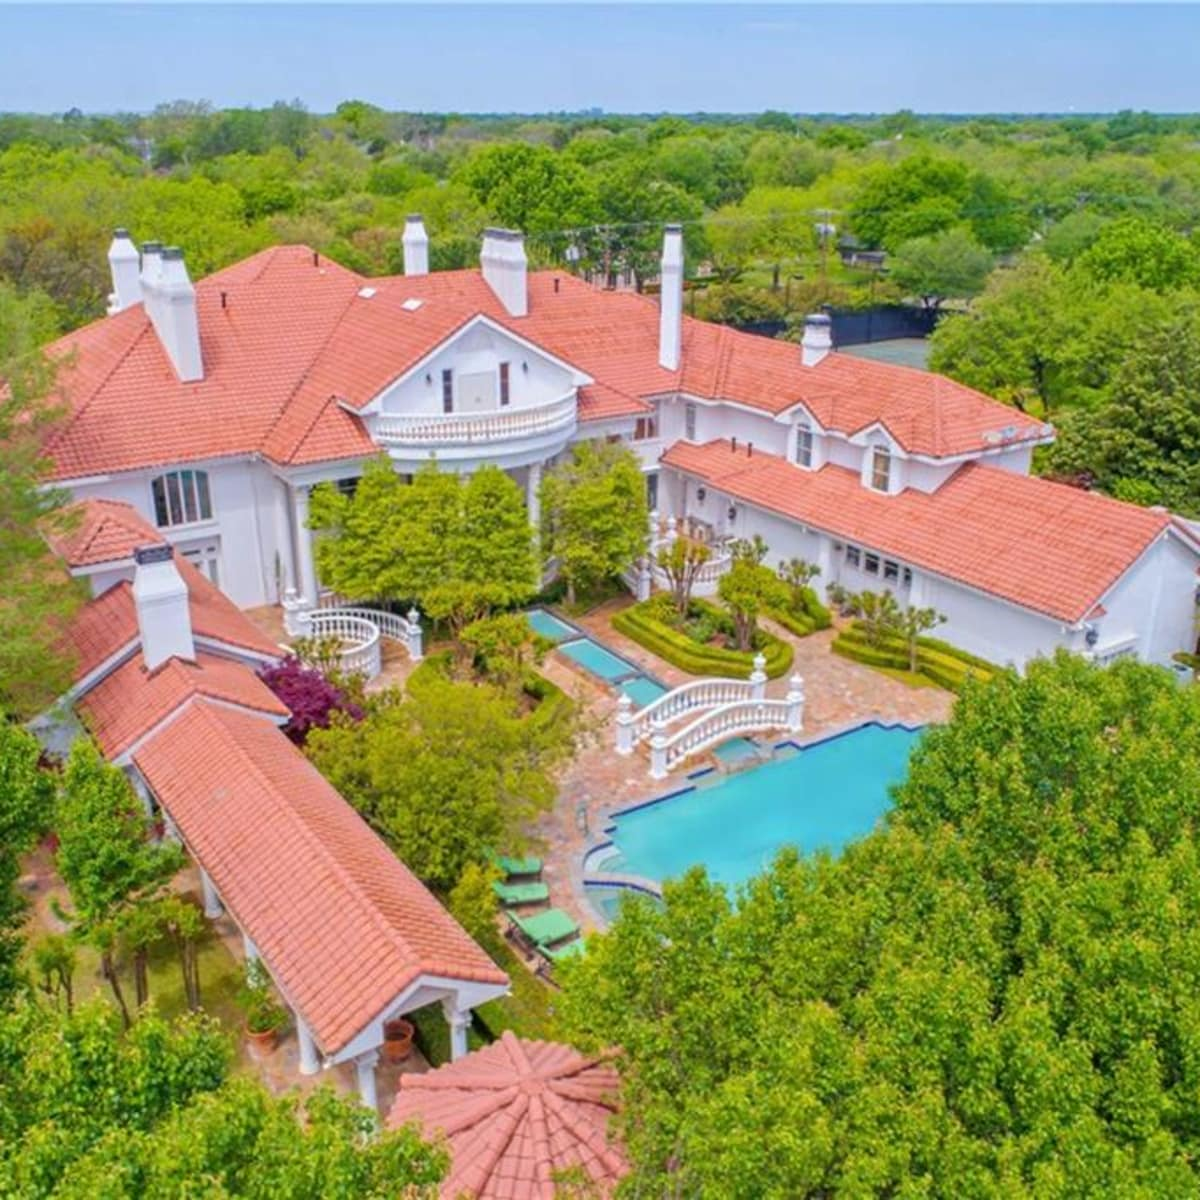 Dallas palace for sale, 9006 Douglas Ave.